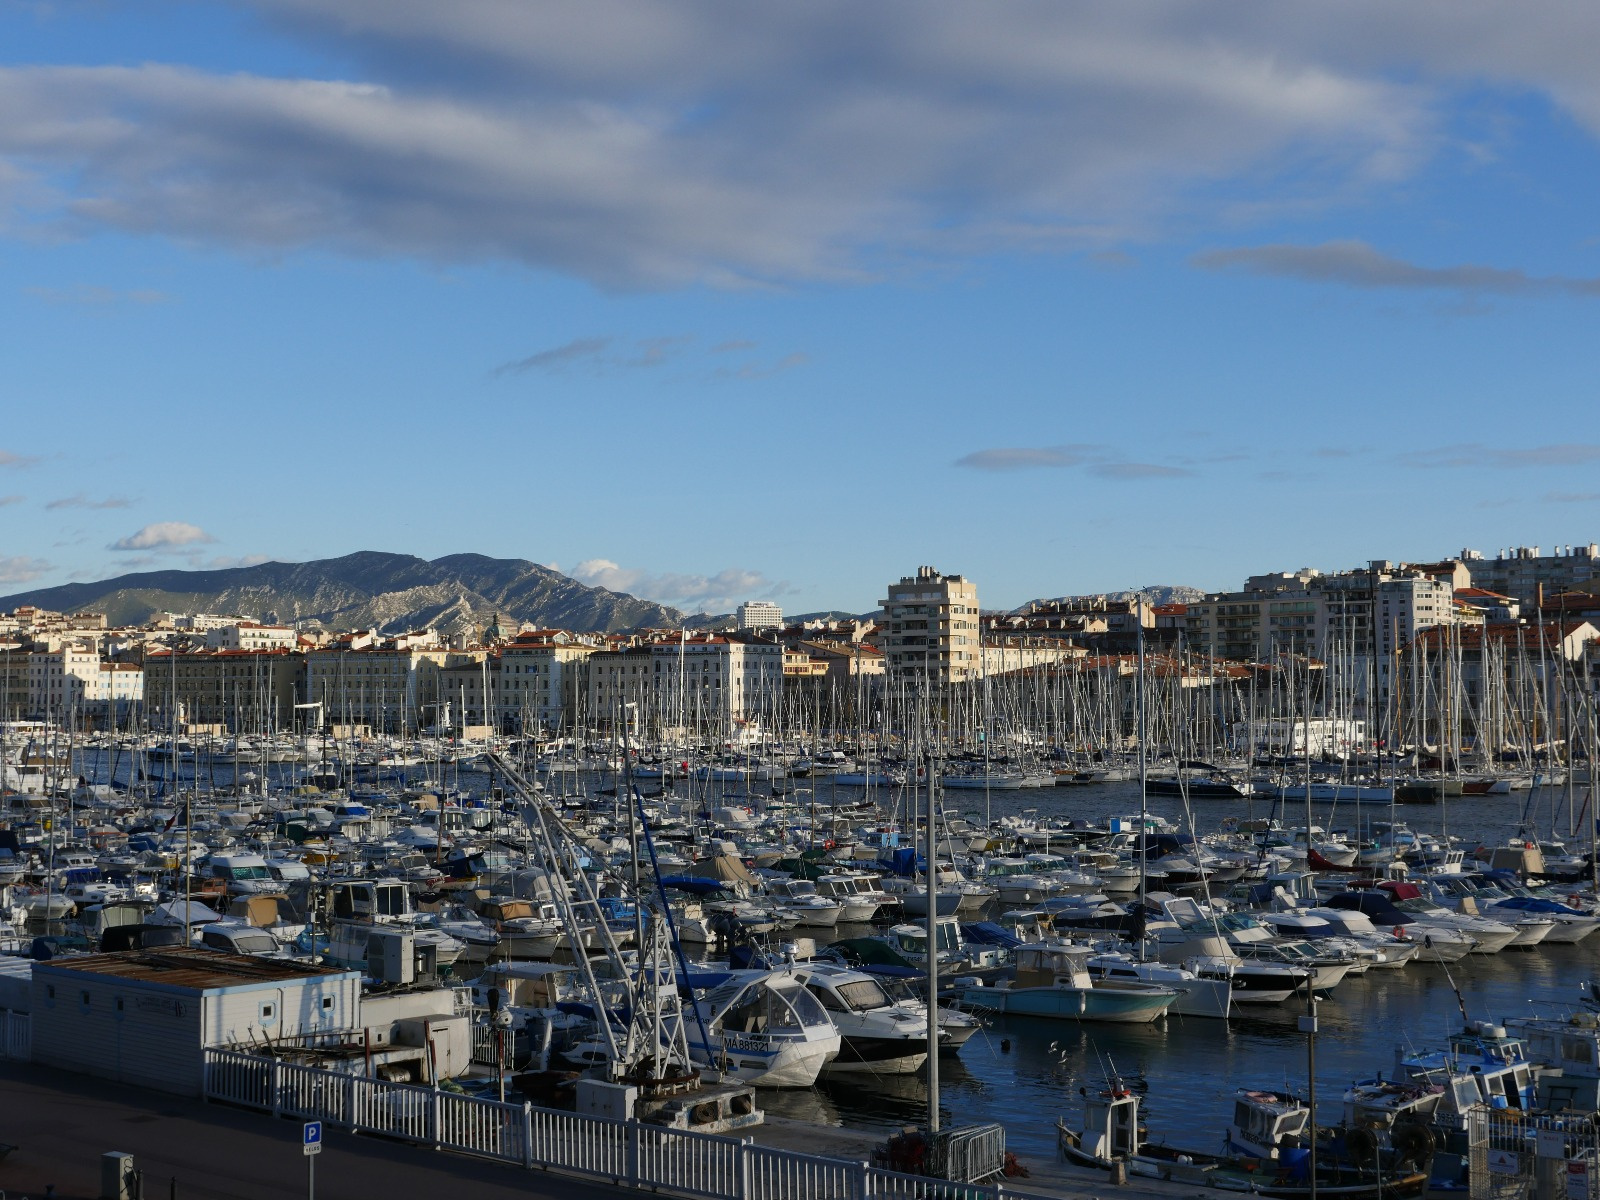 Annonce vente appartement marseille 2 59 m 147 000 for Vente appartement vieux port marseille